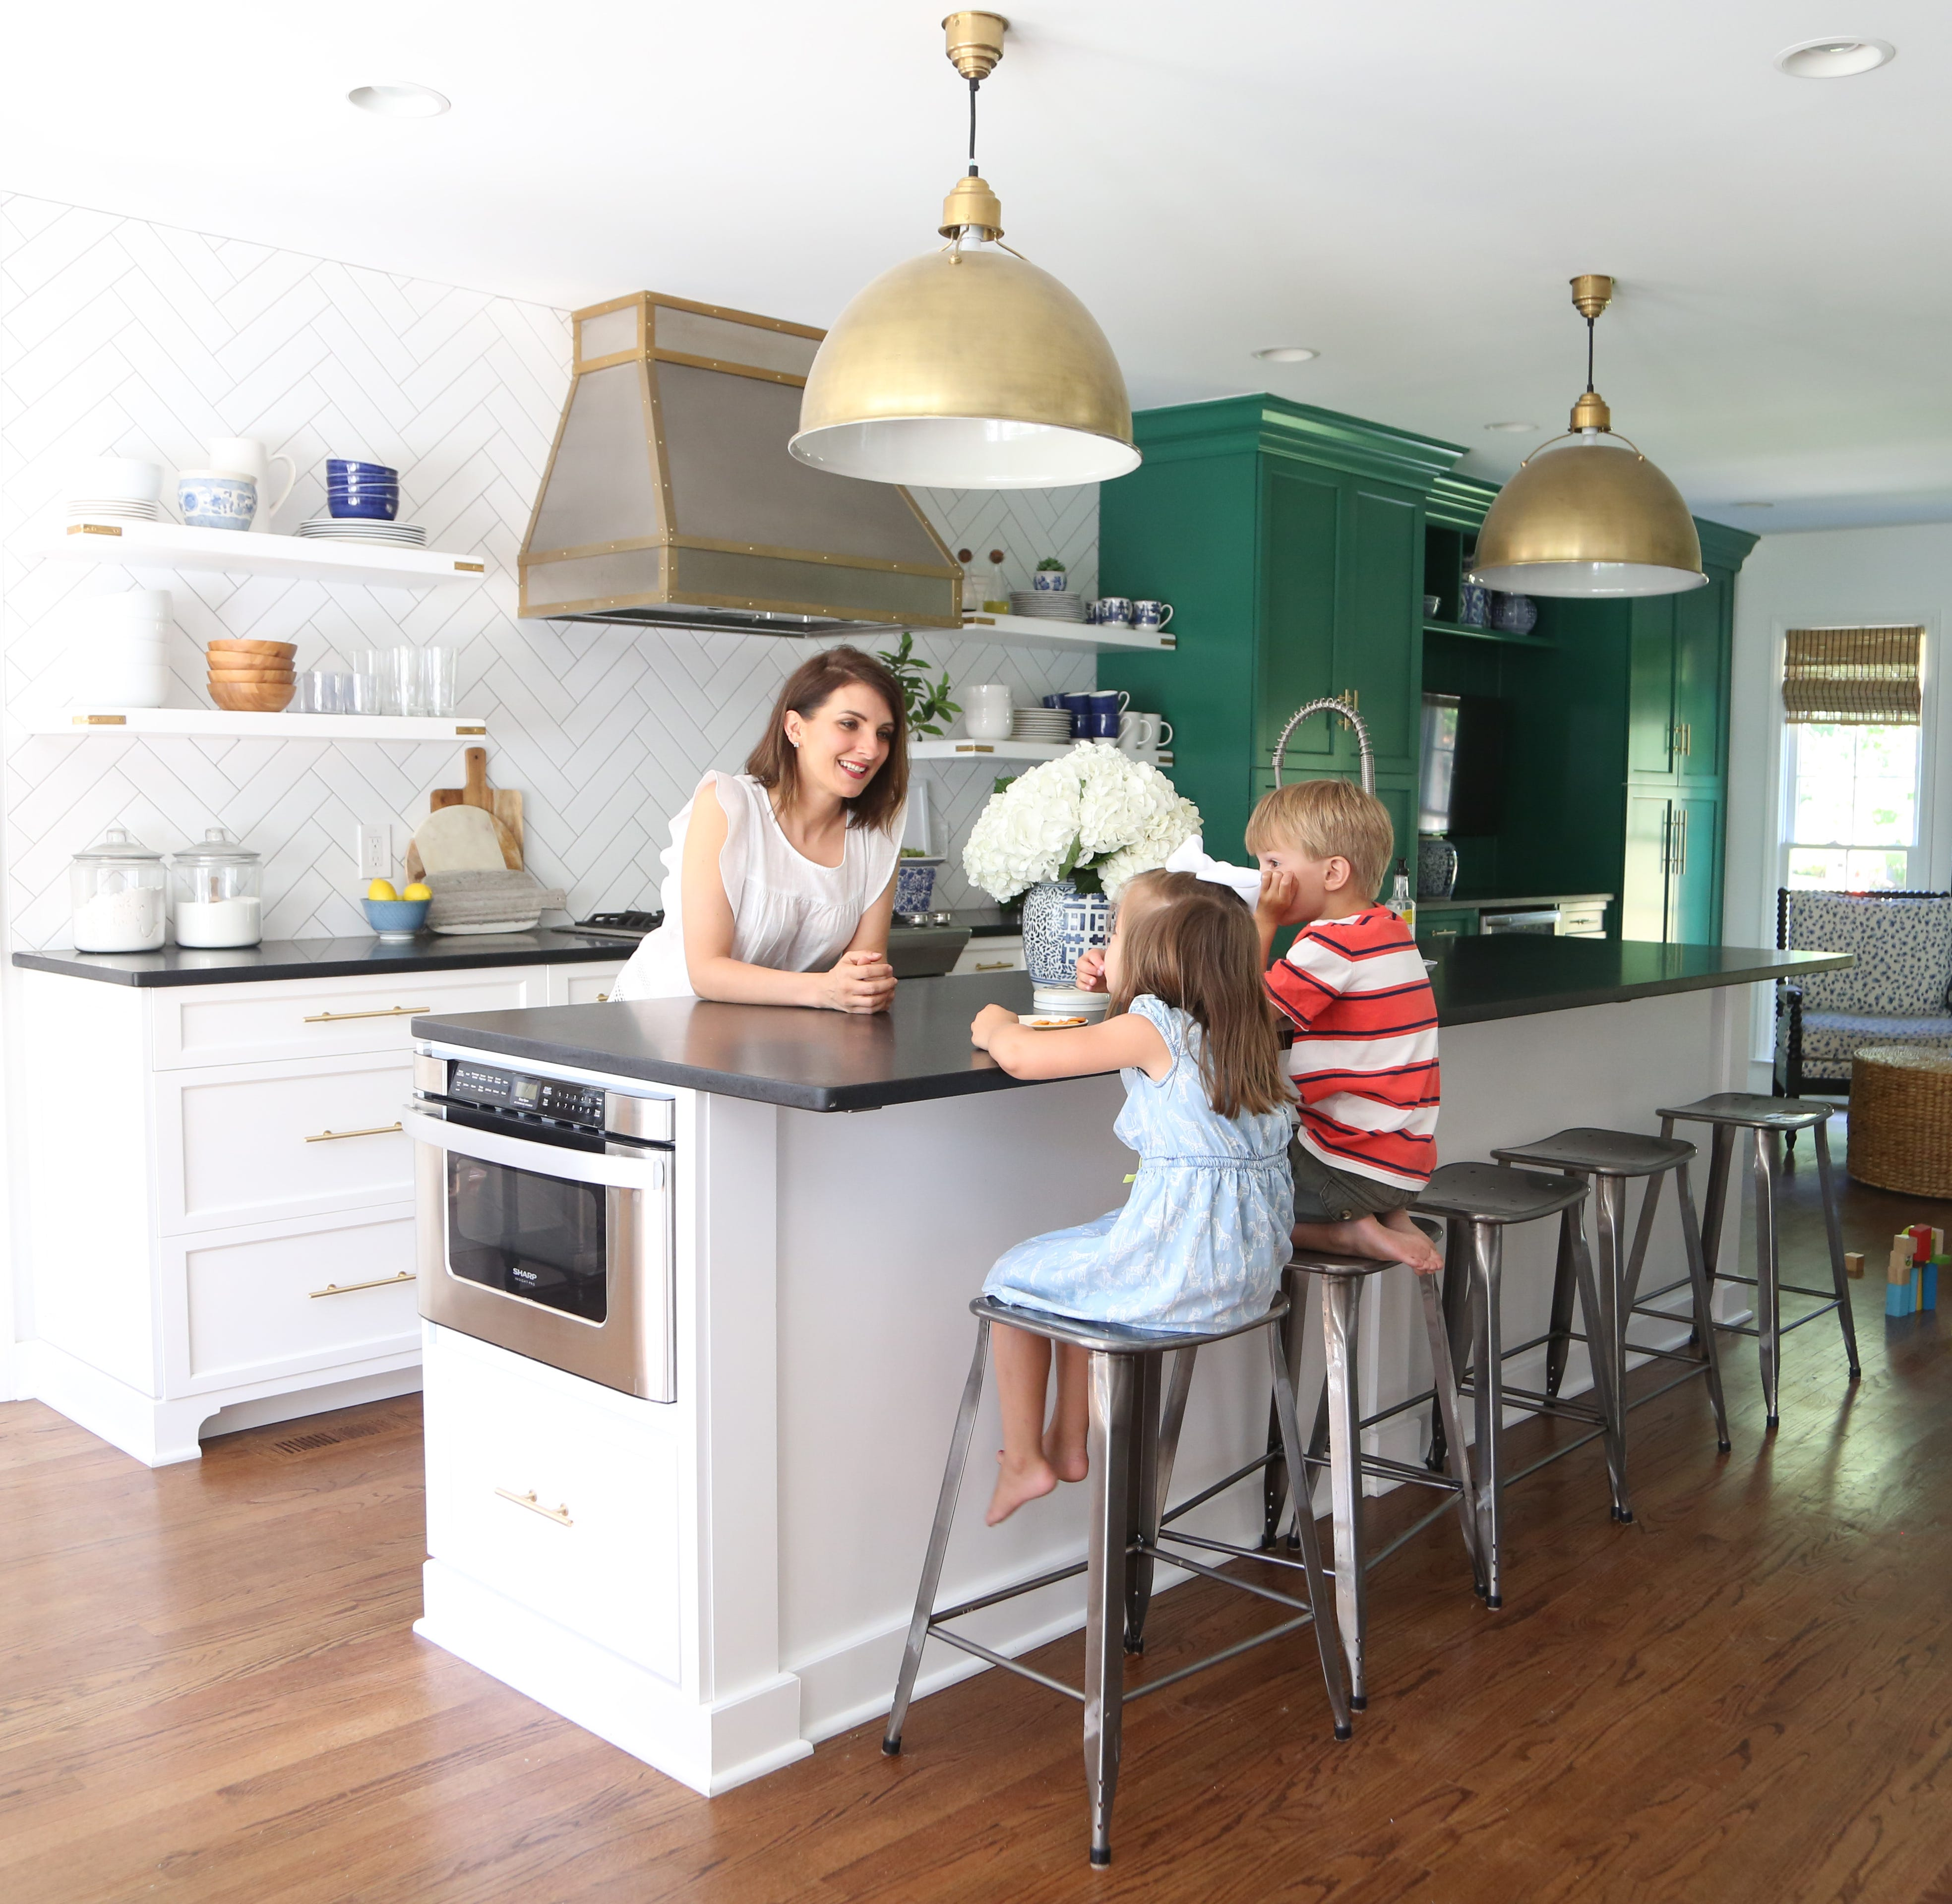 Home decorating: Create a stylish home on a budget with kids